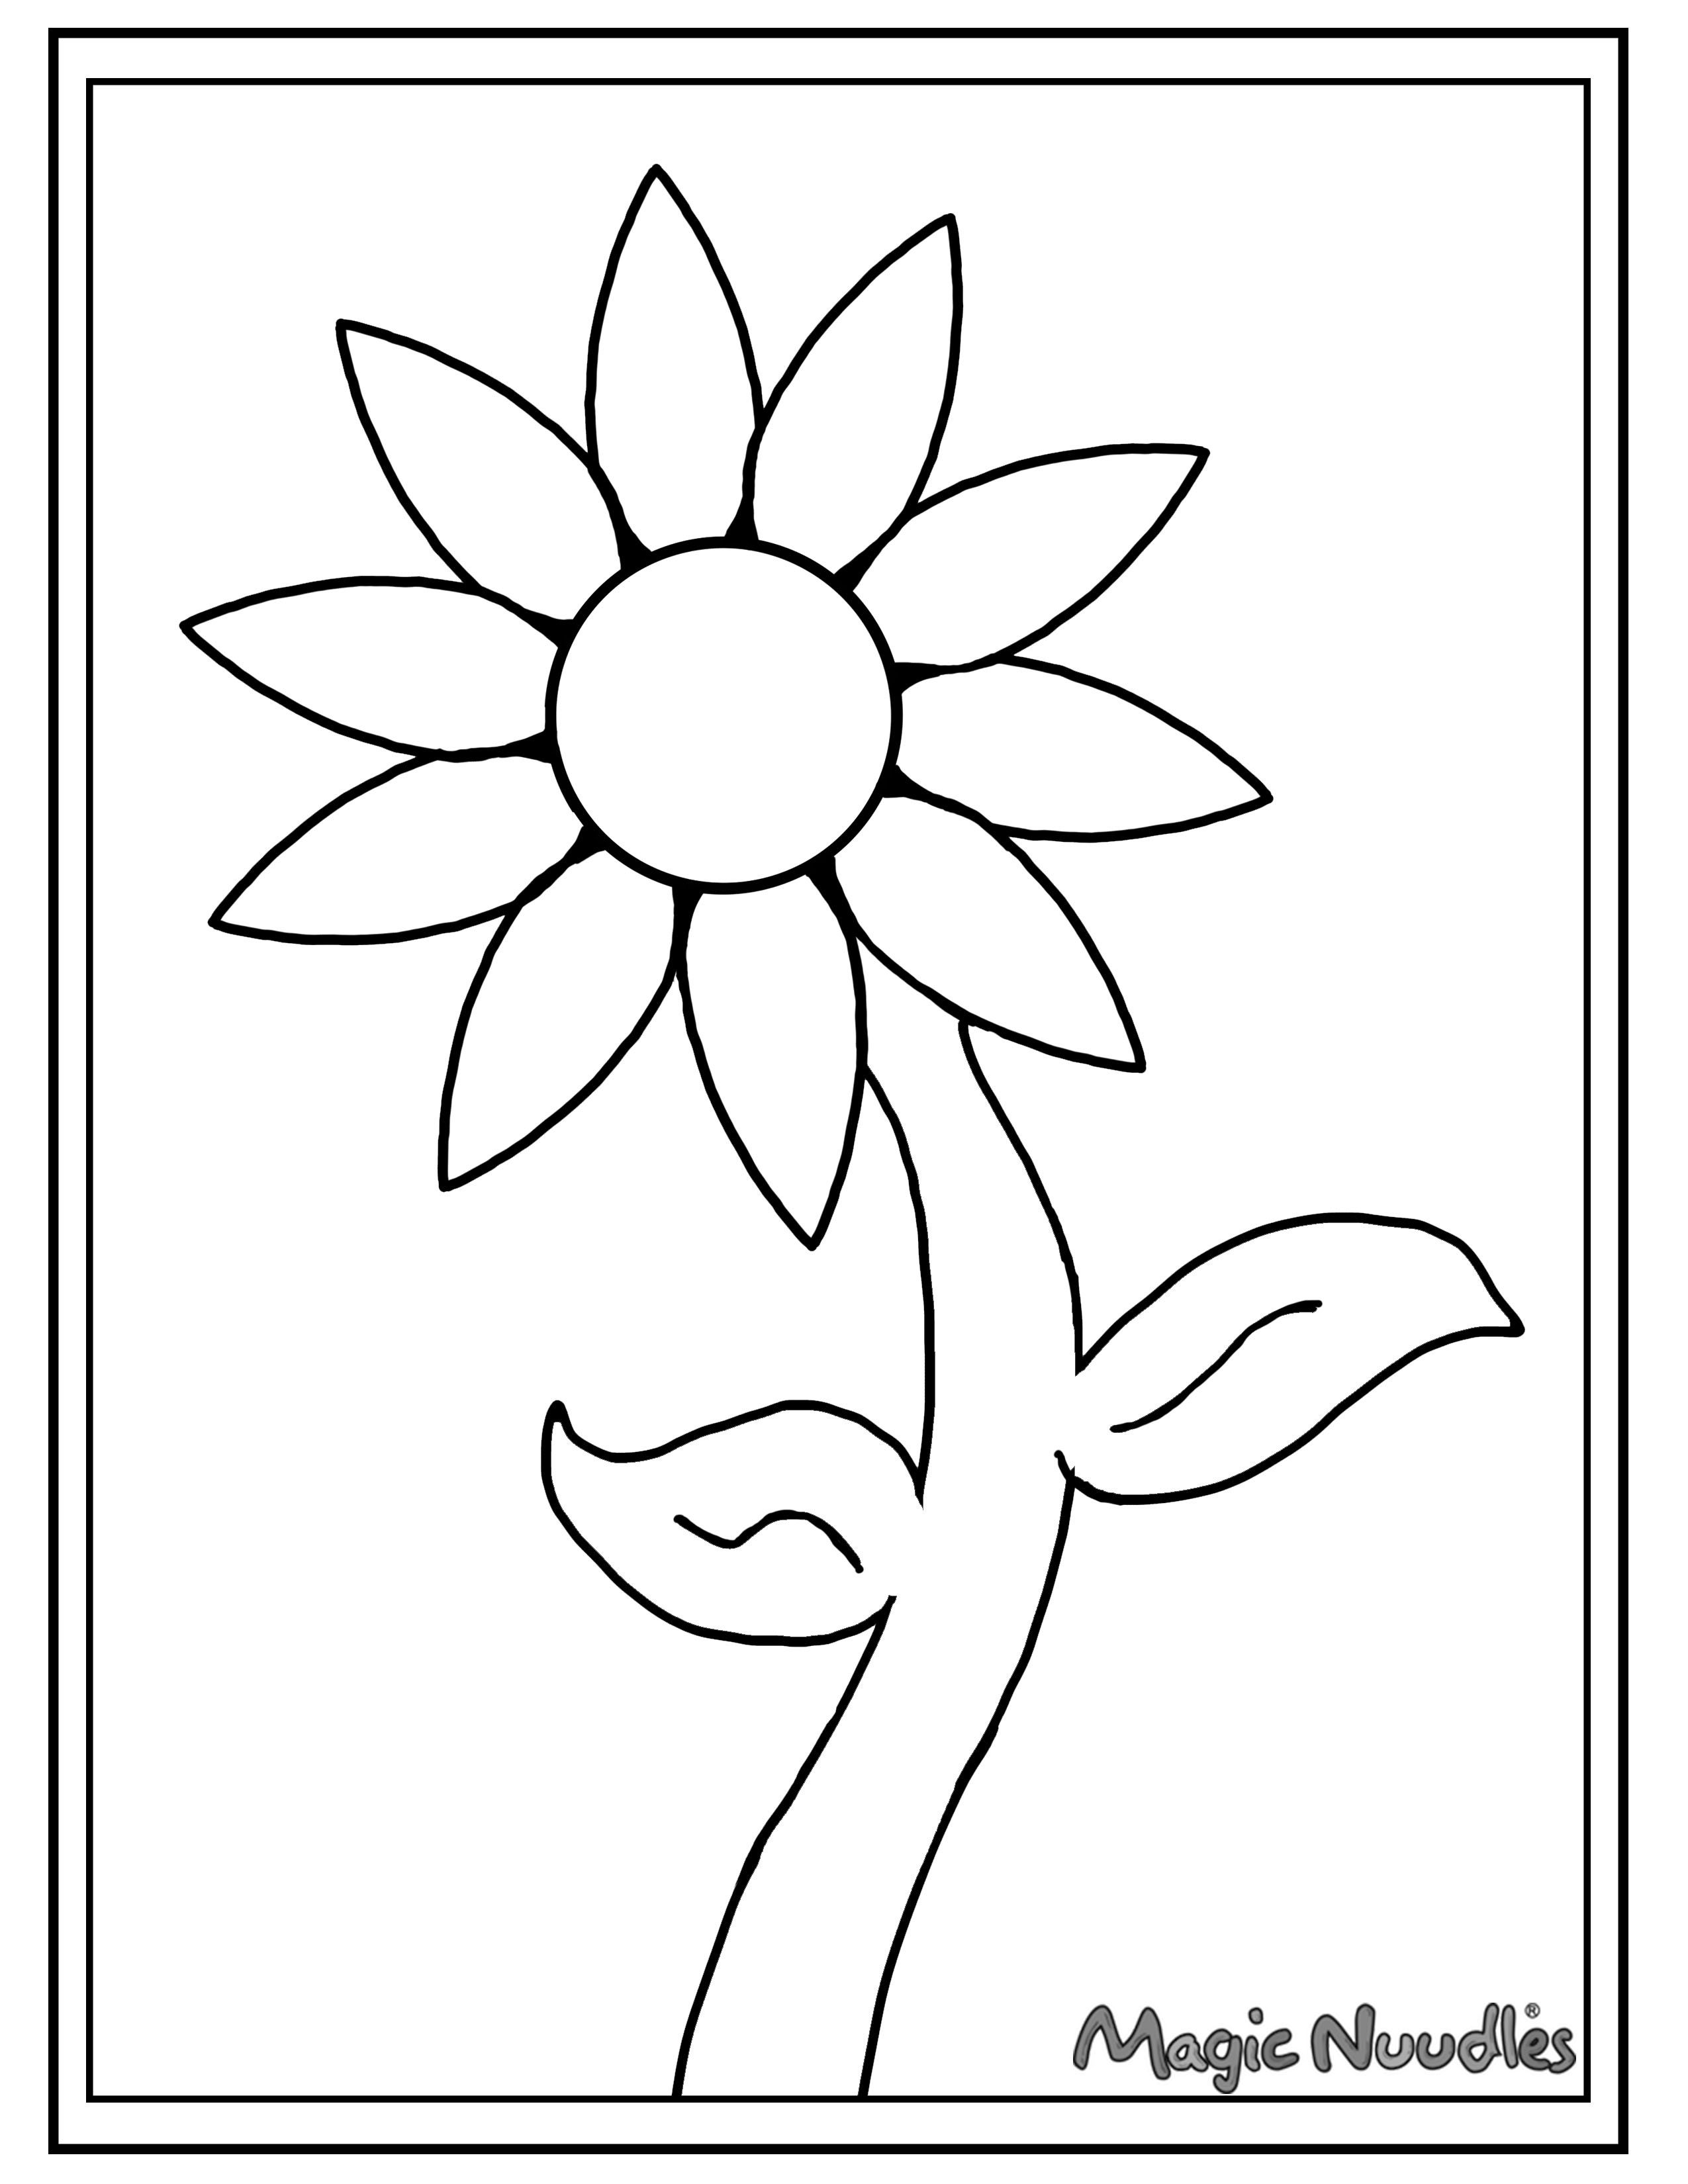 Use magic nuudles to help decorate this coloring page spring